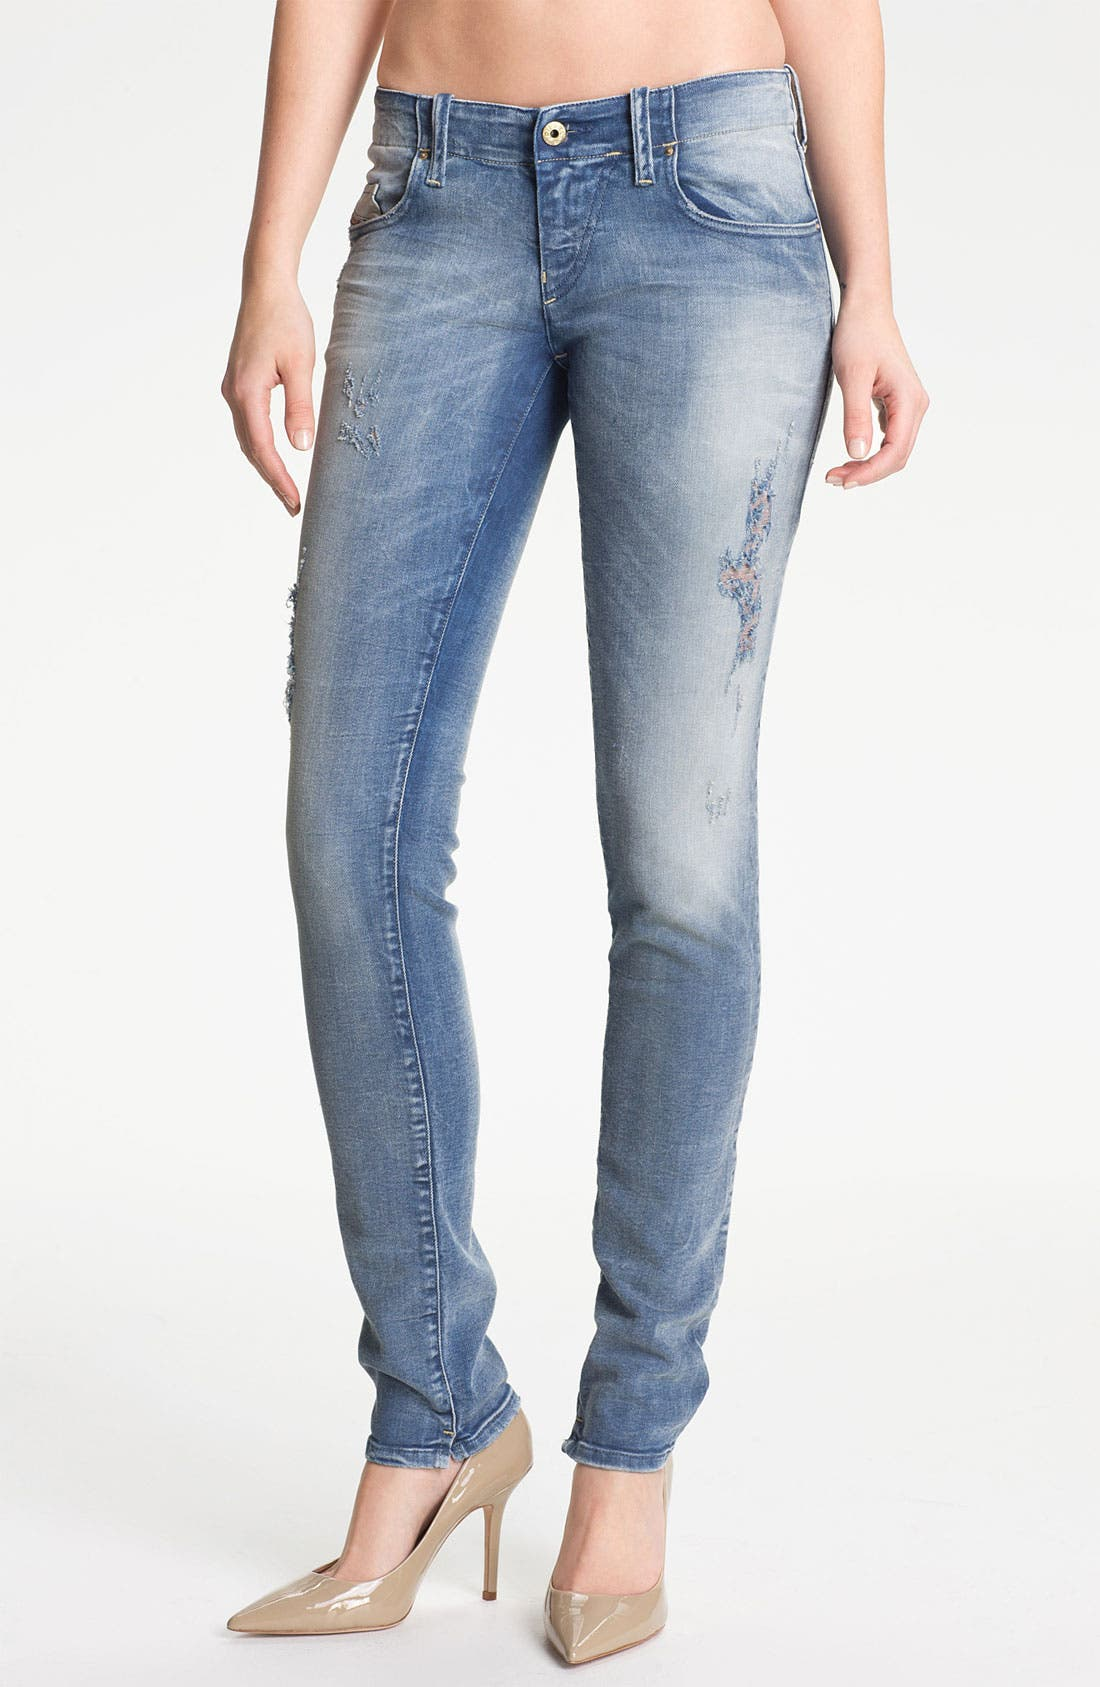 Alternate Image 1 Selected - DIESEL® 'Grupee' Distressed Denim Skinny Jeans (Blue Distressed)